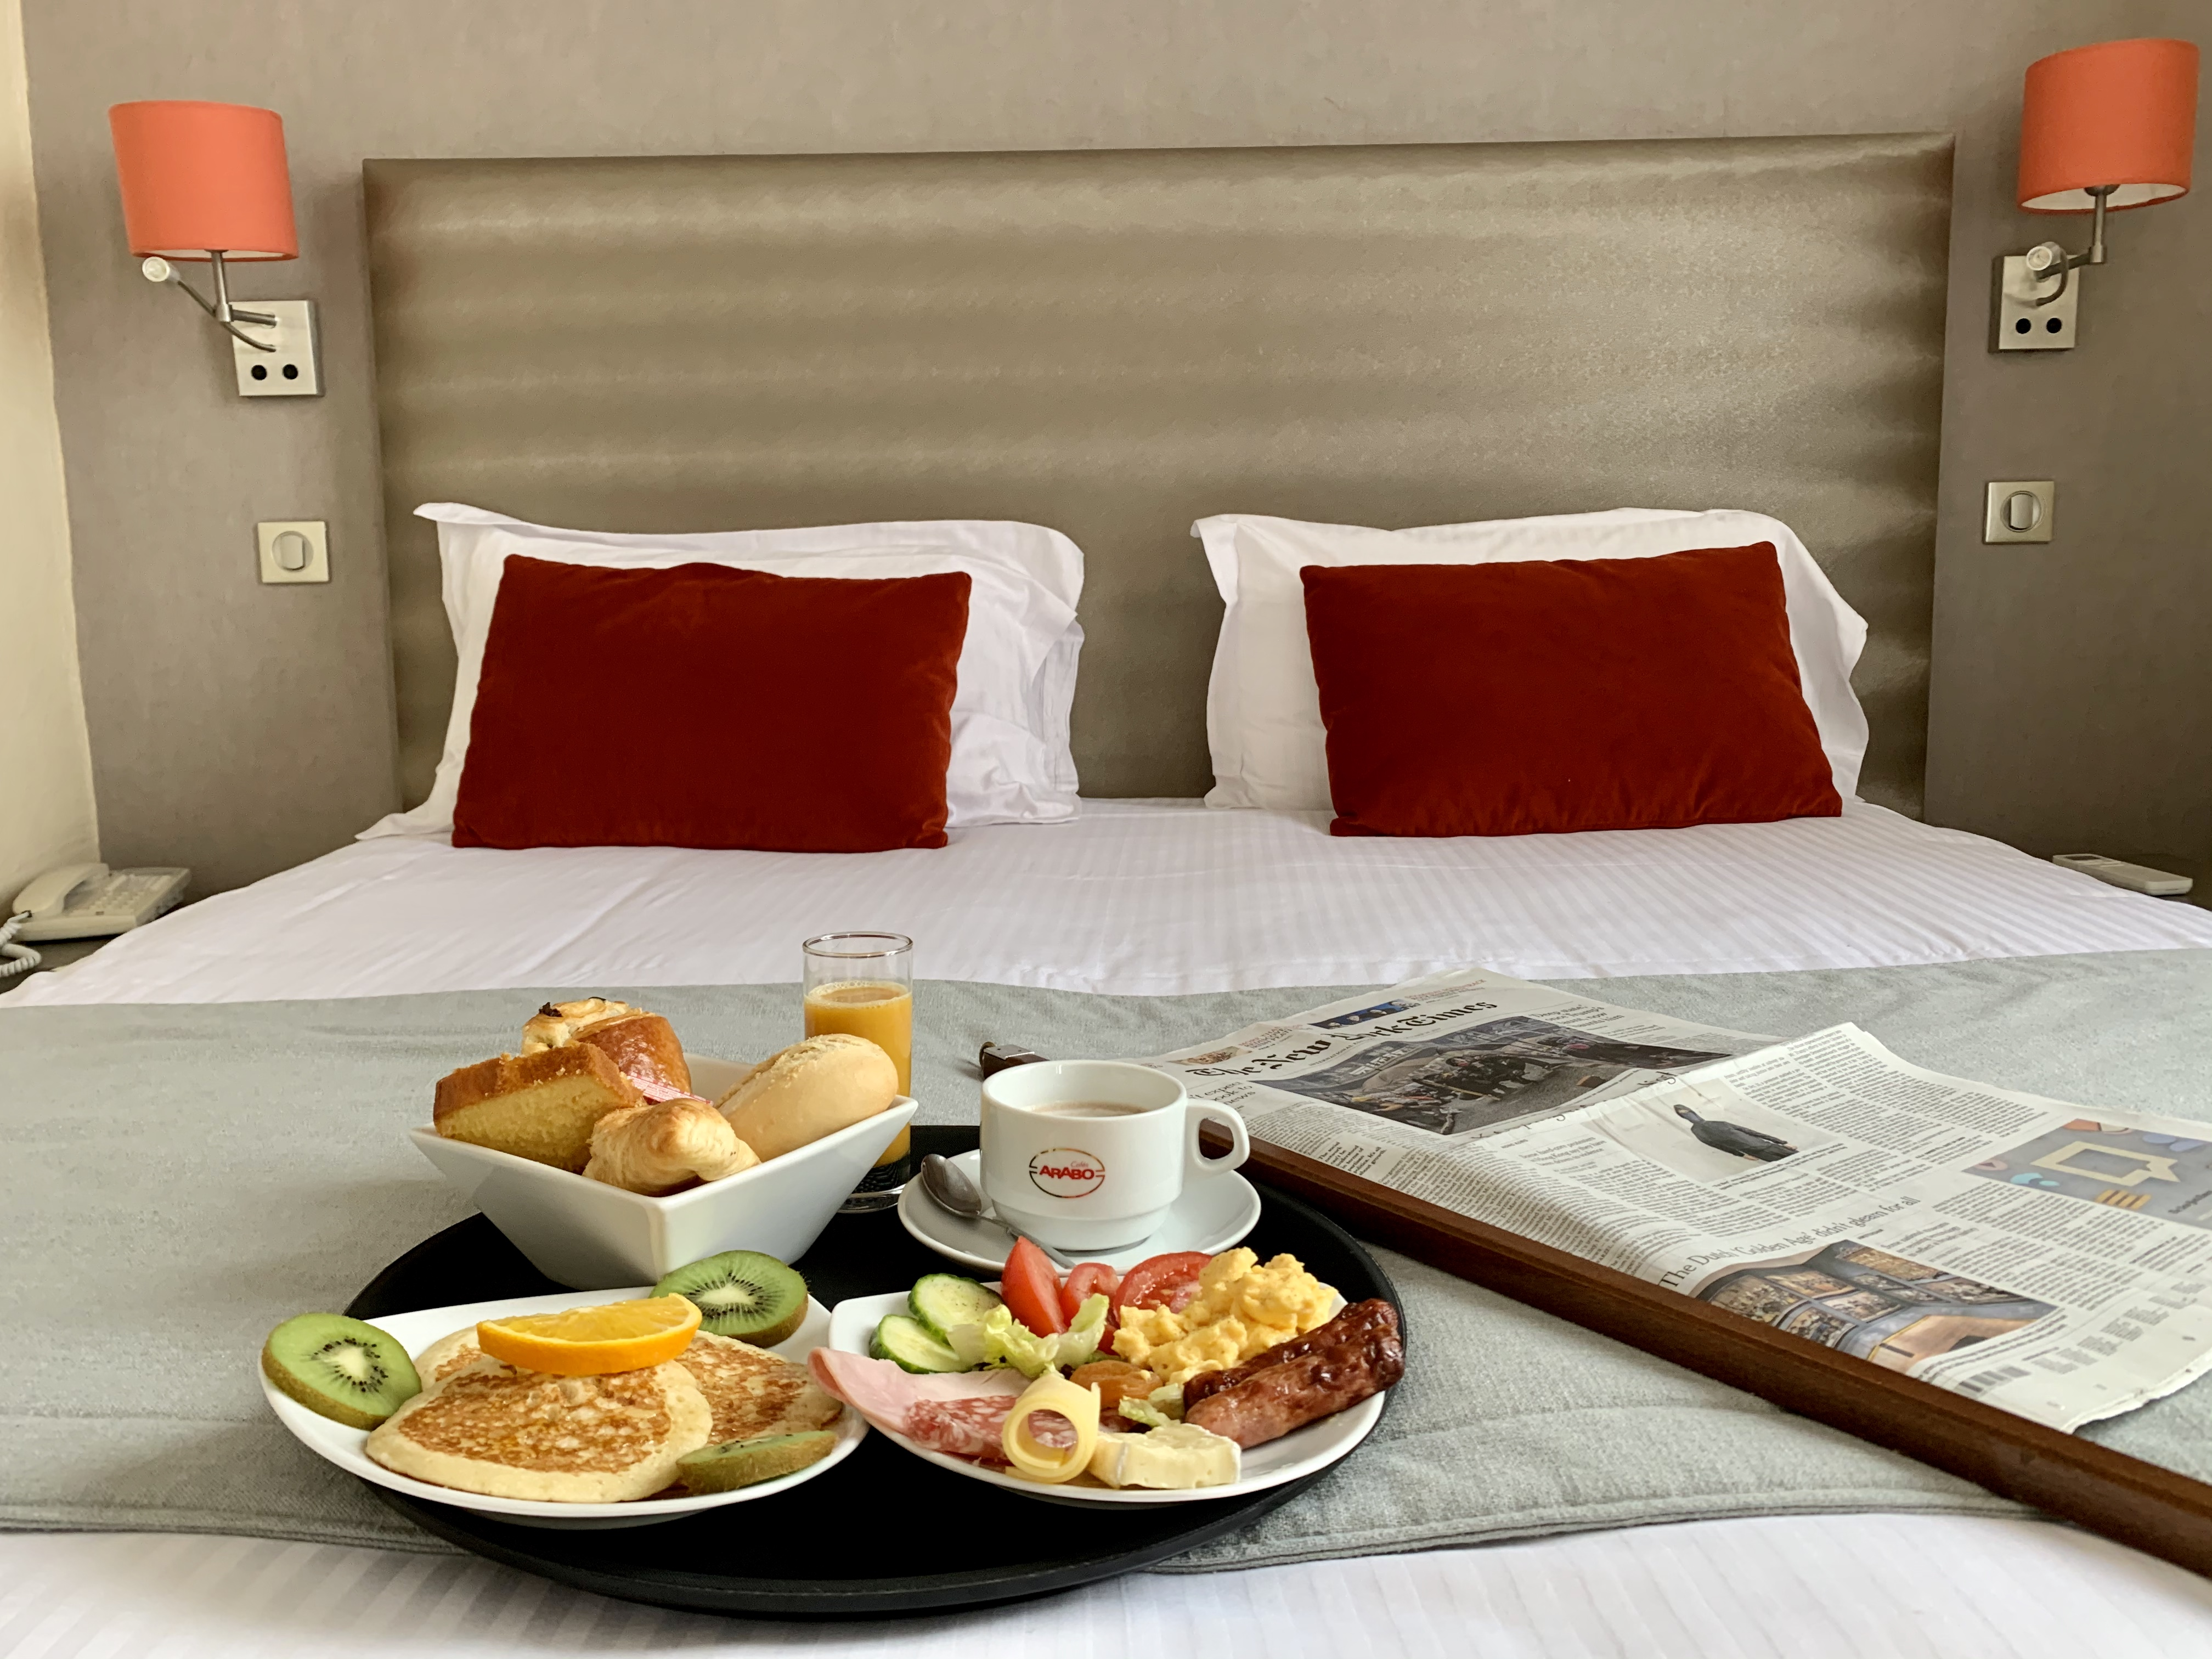 Breakfast in the room - Romantic weekend in Cannes - Credit Hôtel des Orangers